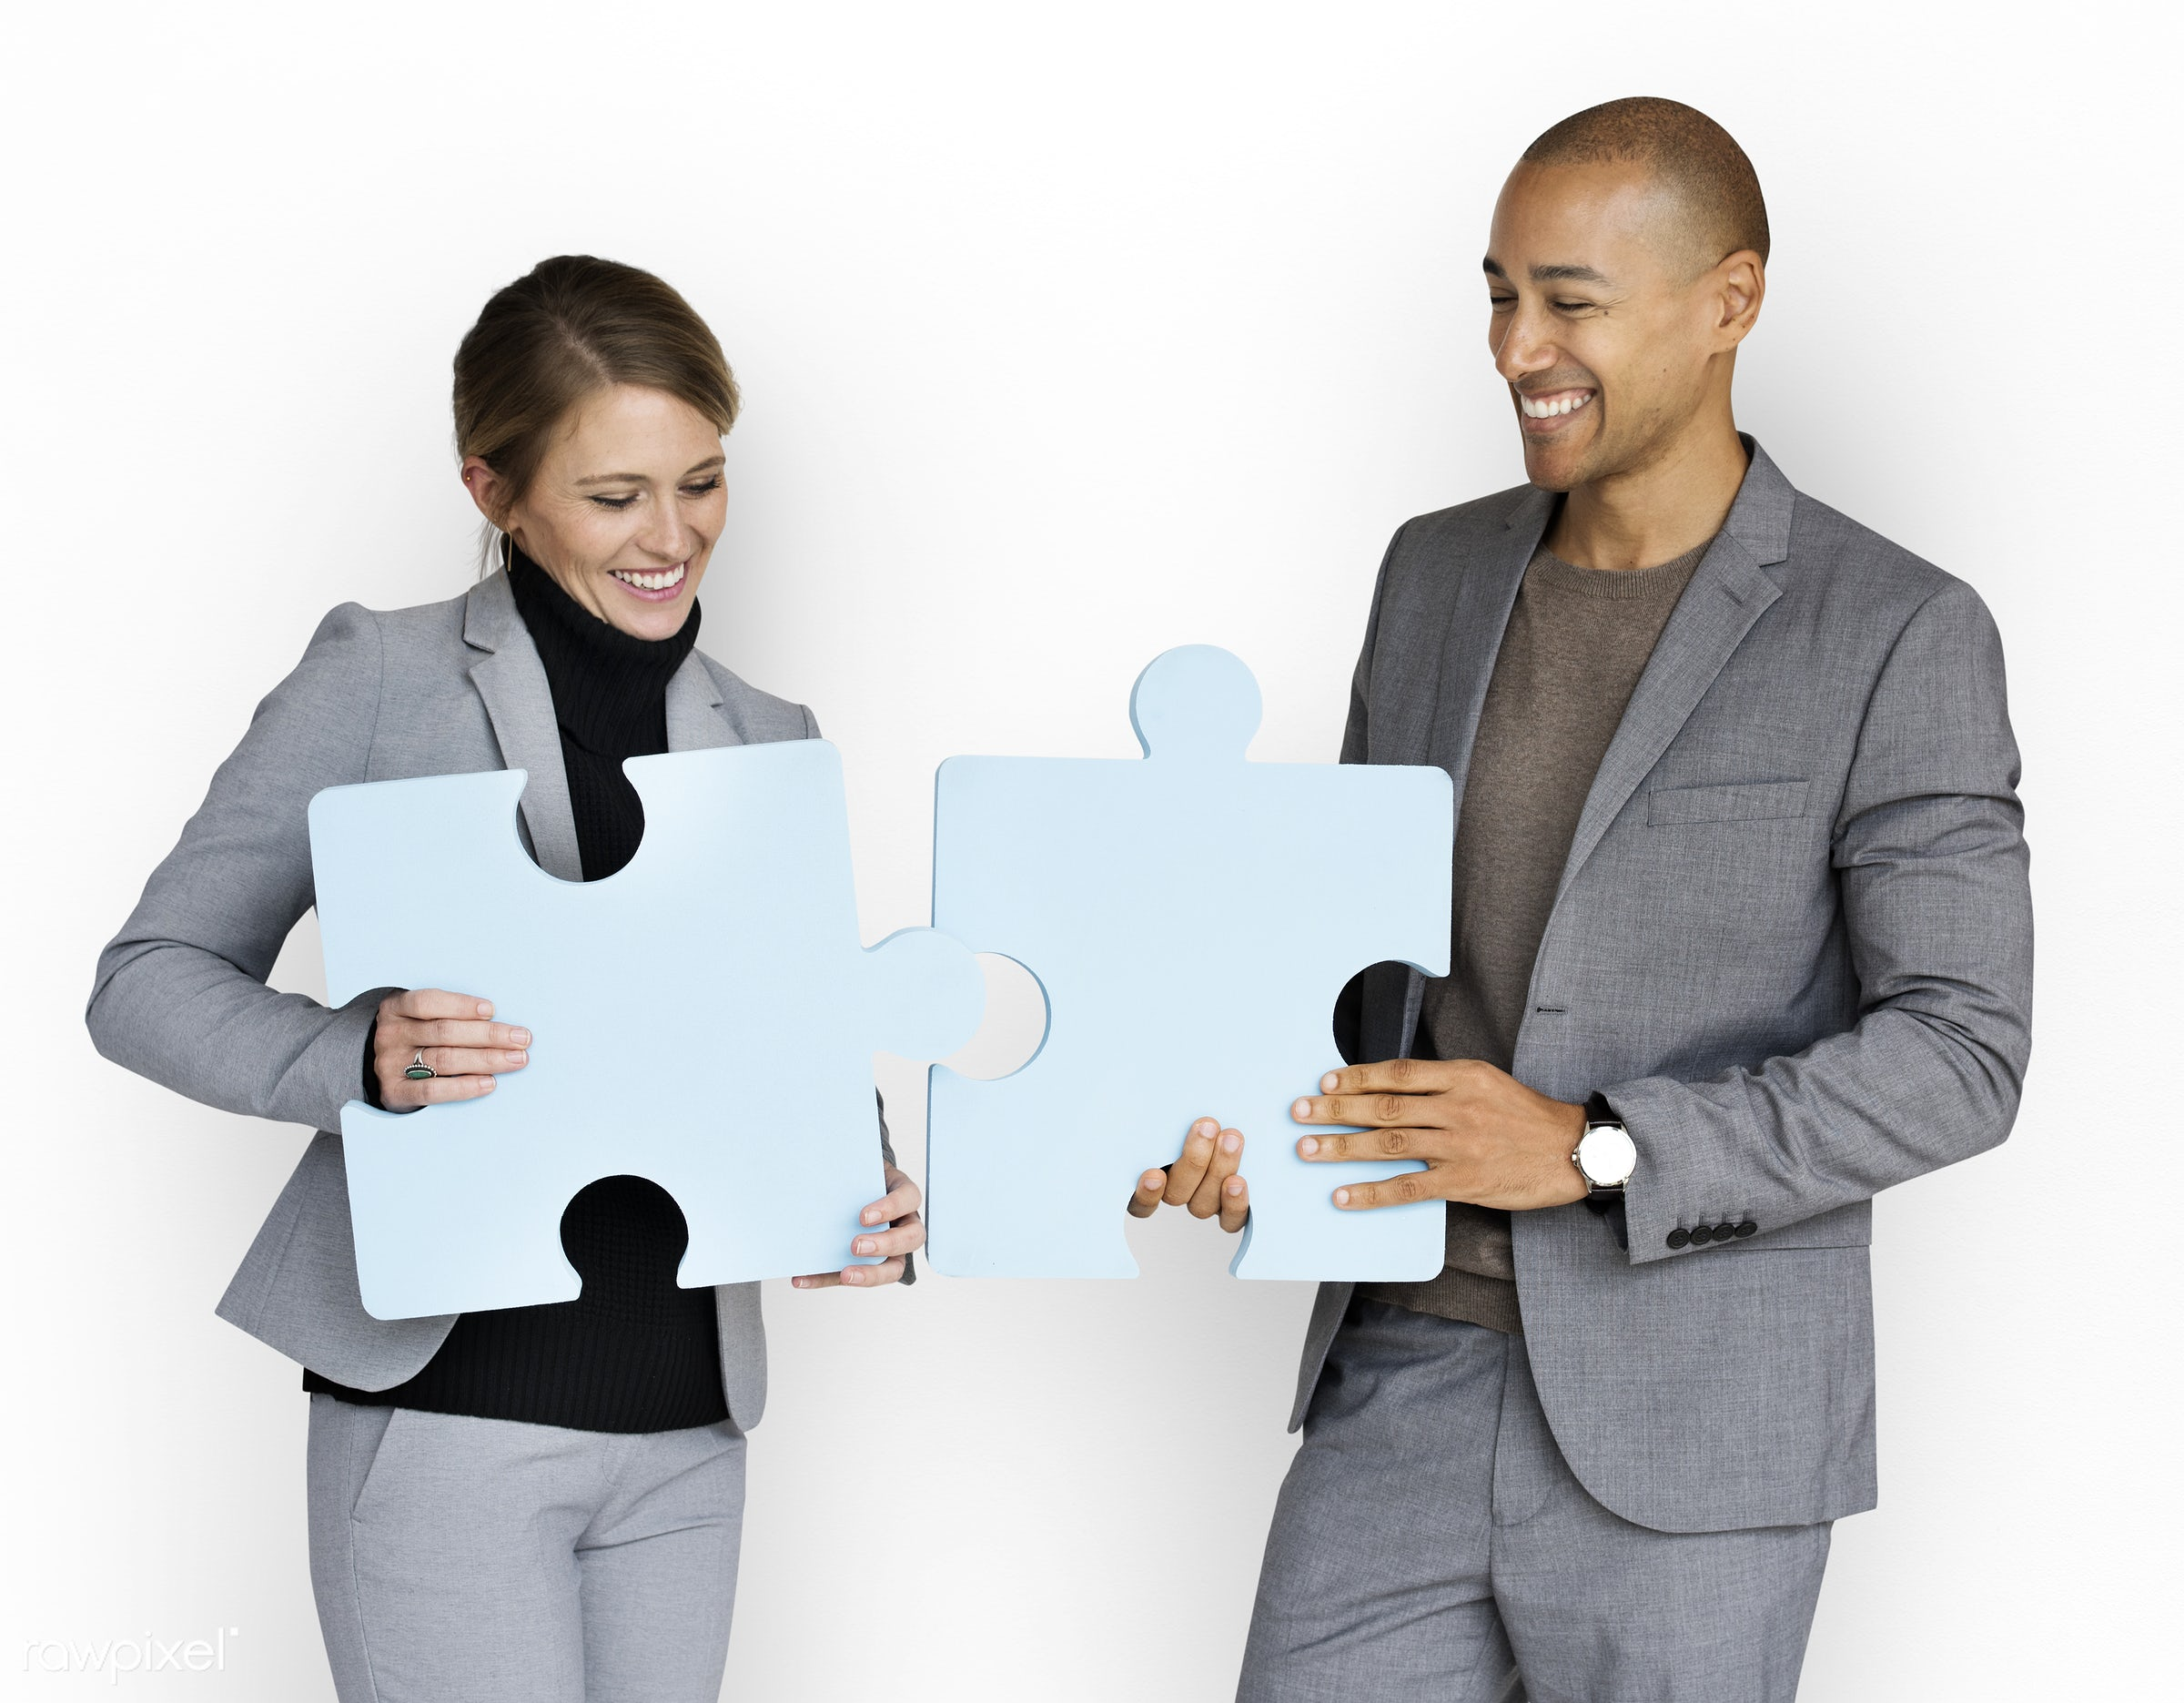 studio, expression, person, jigsaw, holding, people, teamwork, woman, cheerful, smiling, isolated, connection, symbol, white...